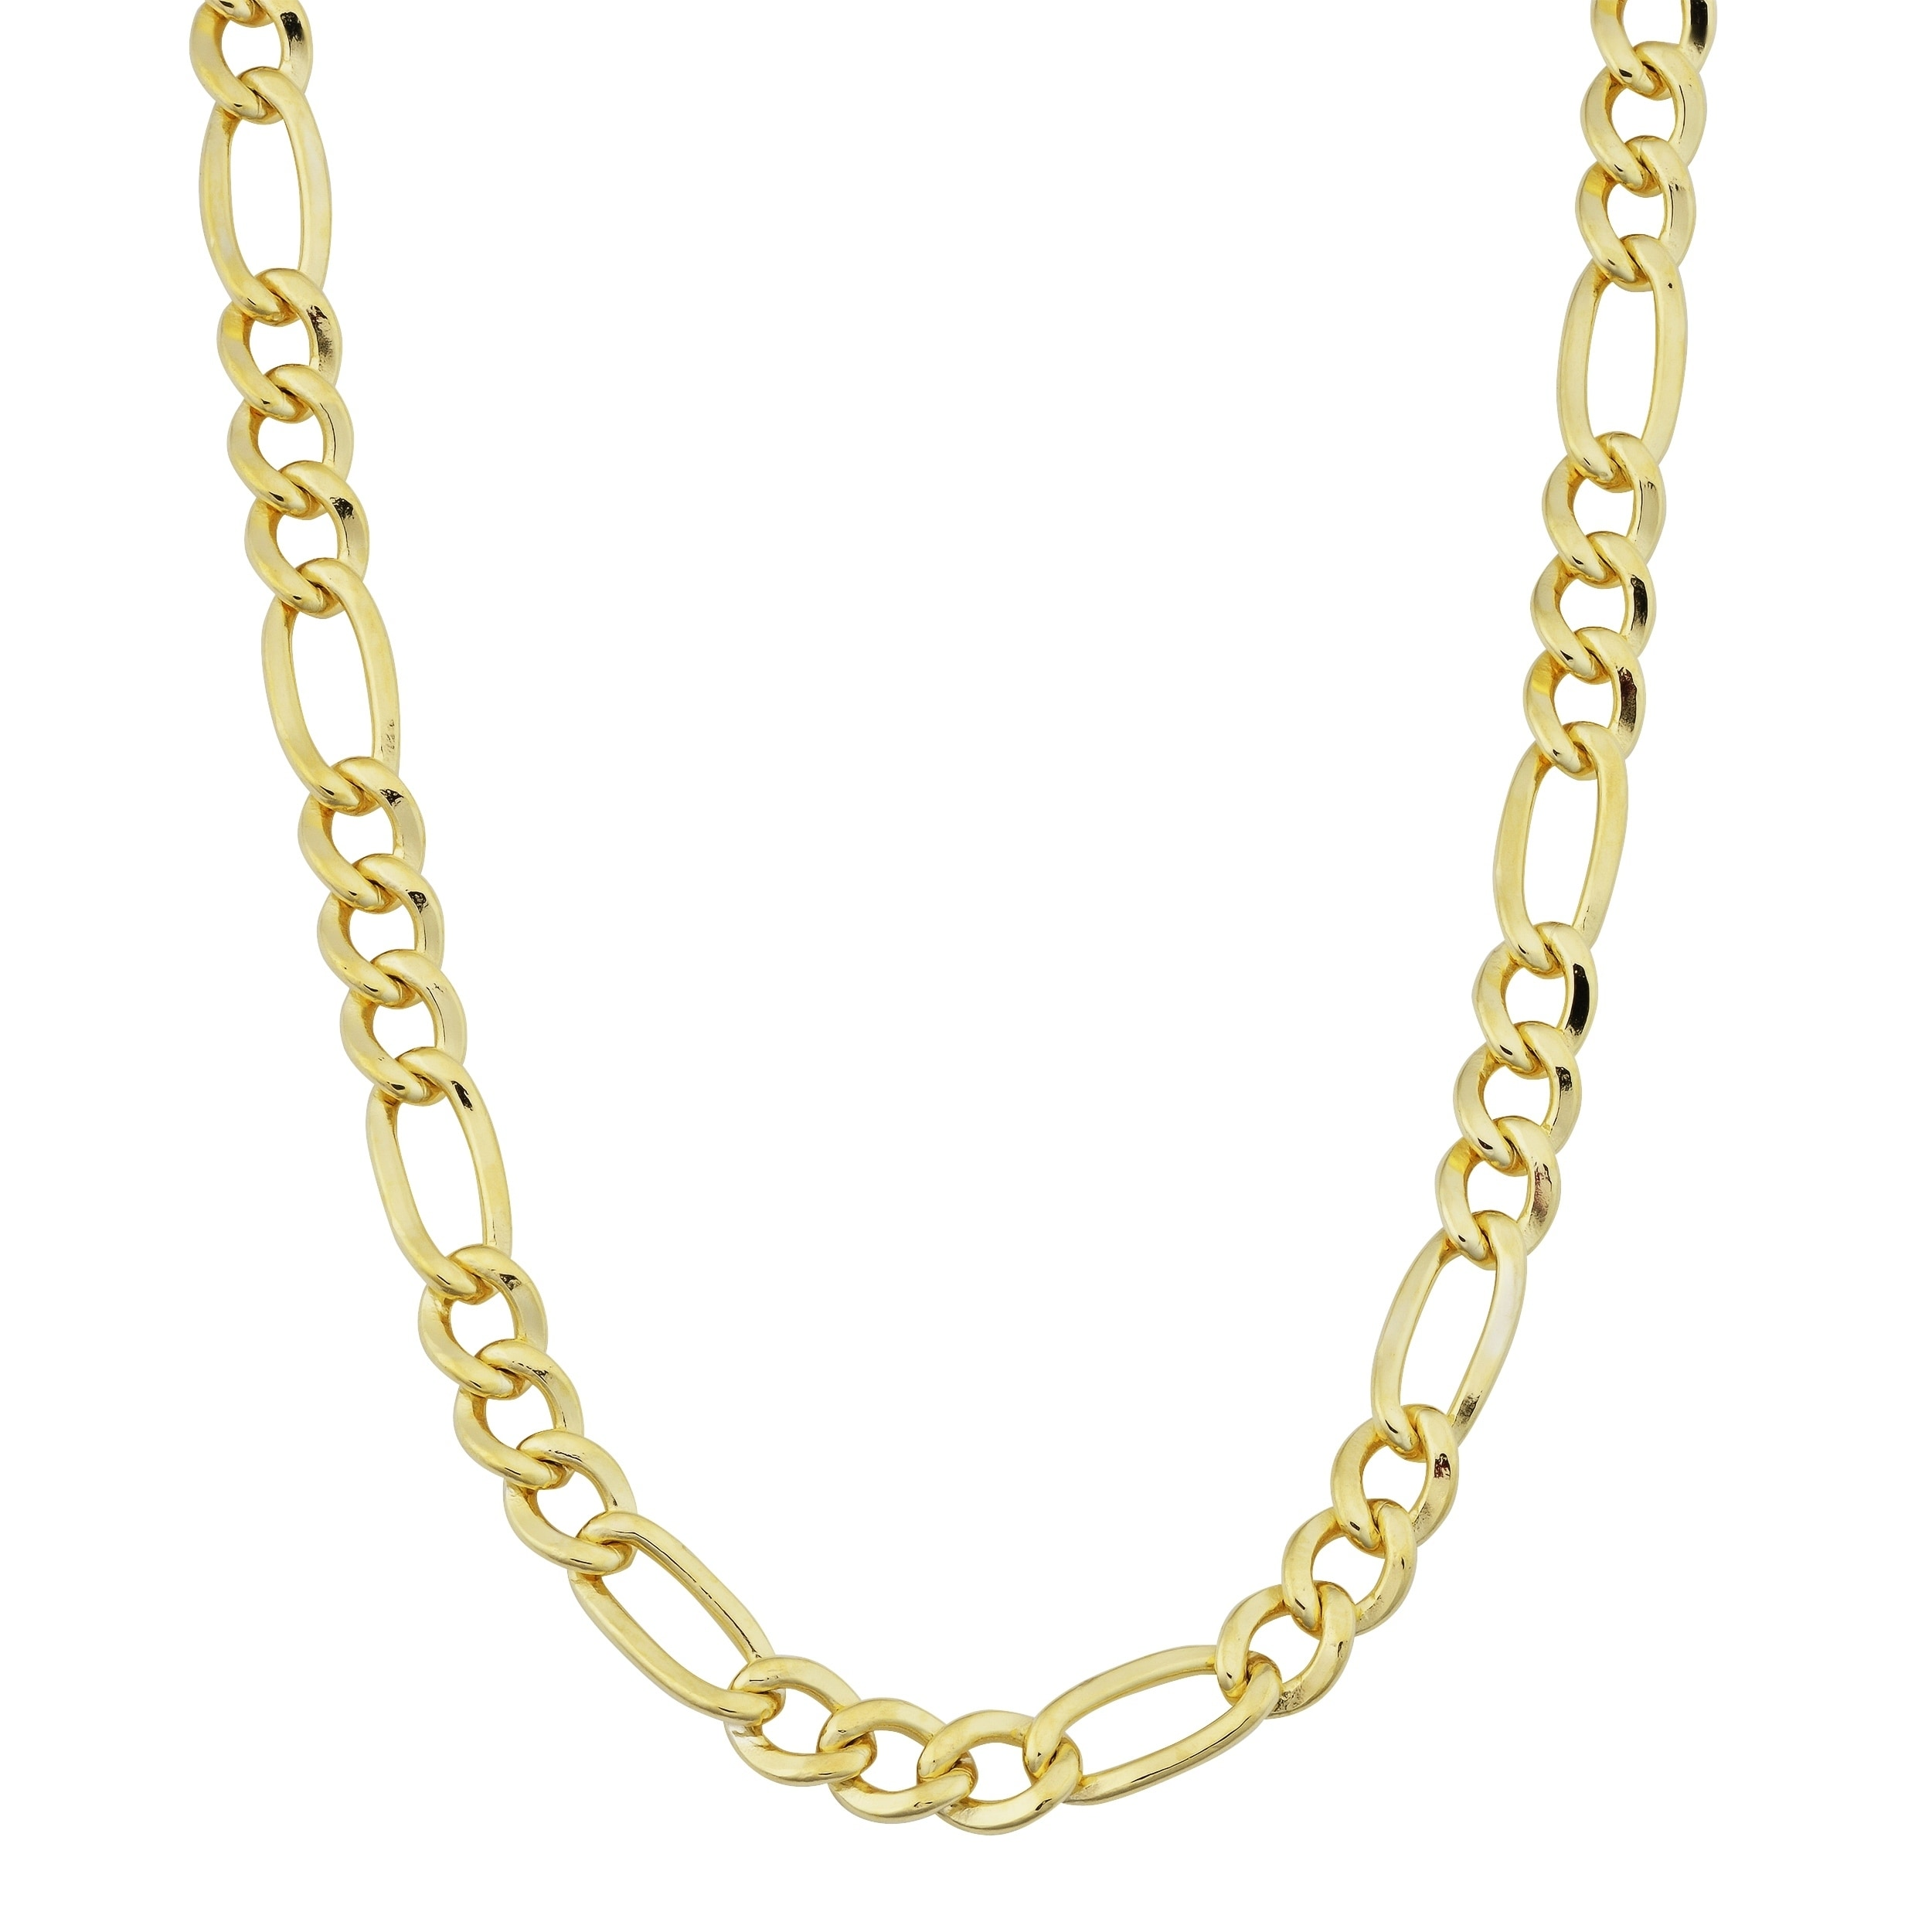 chain chains solid ladies shop rope gold cut necklace diamond or mens jewelry rose